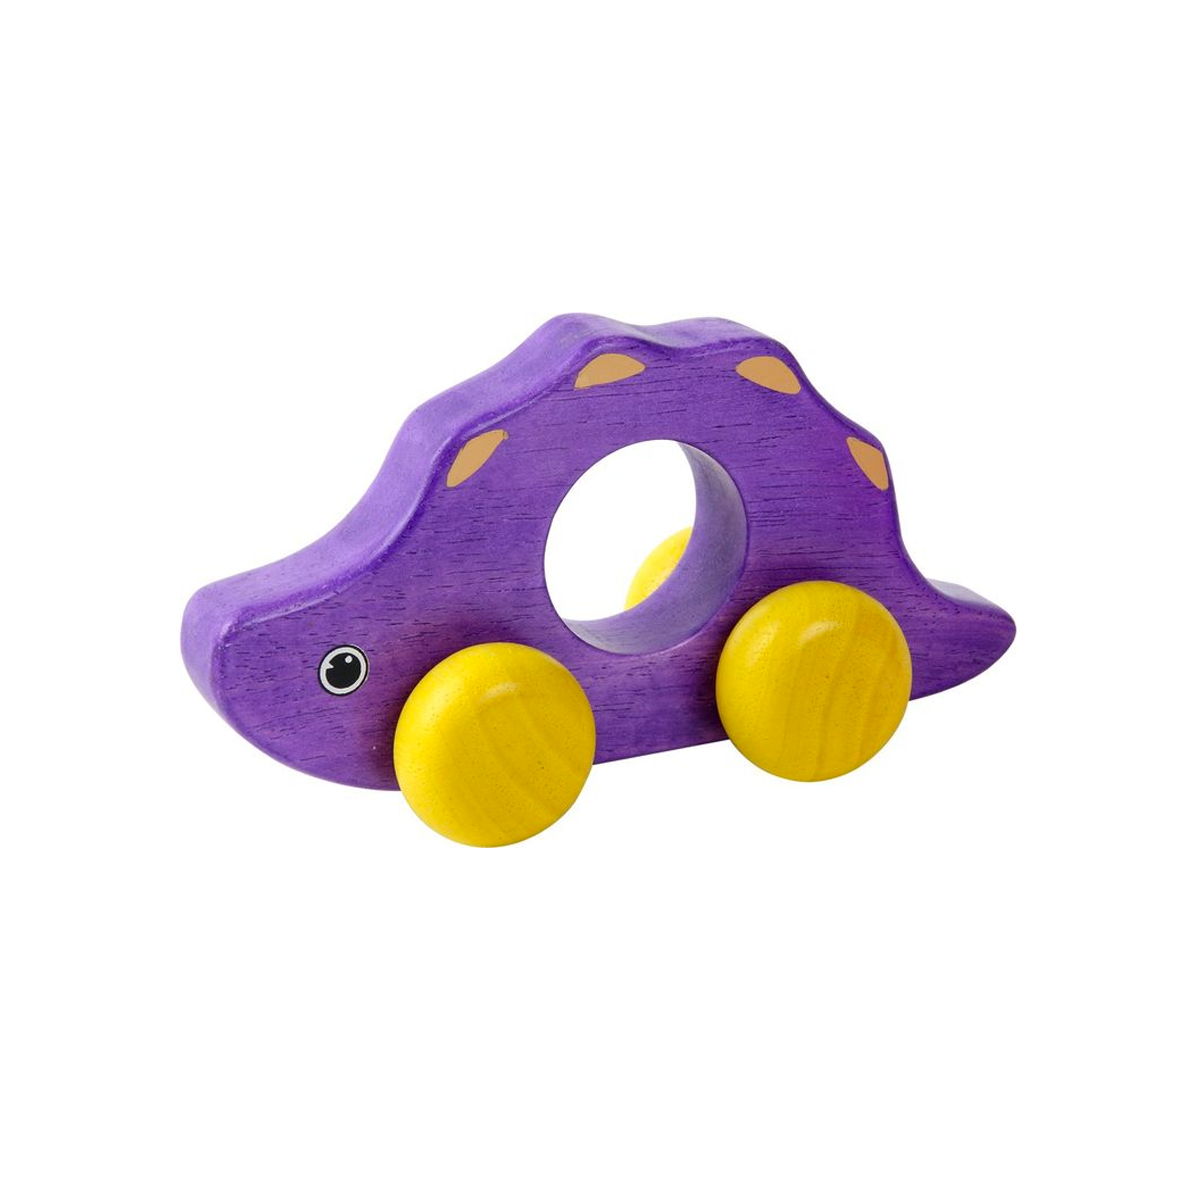 Wooden Toy Roll-a-saurus Voila Push and Pull Toys at Little Earth Nest Eco Shop